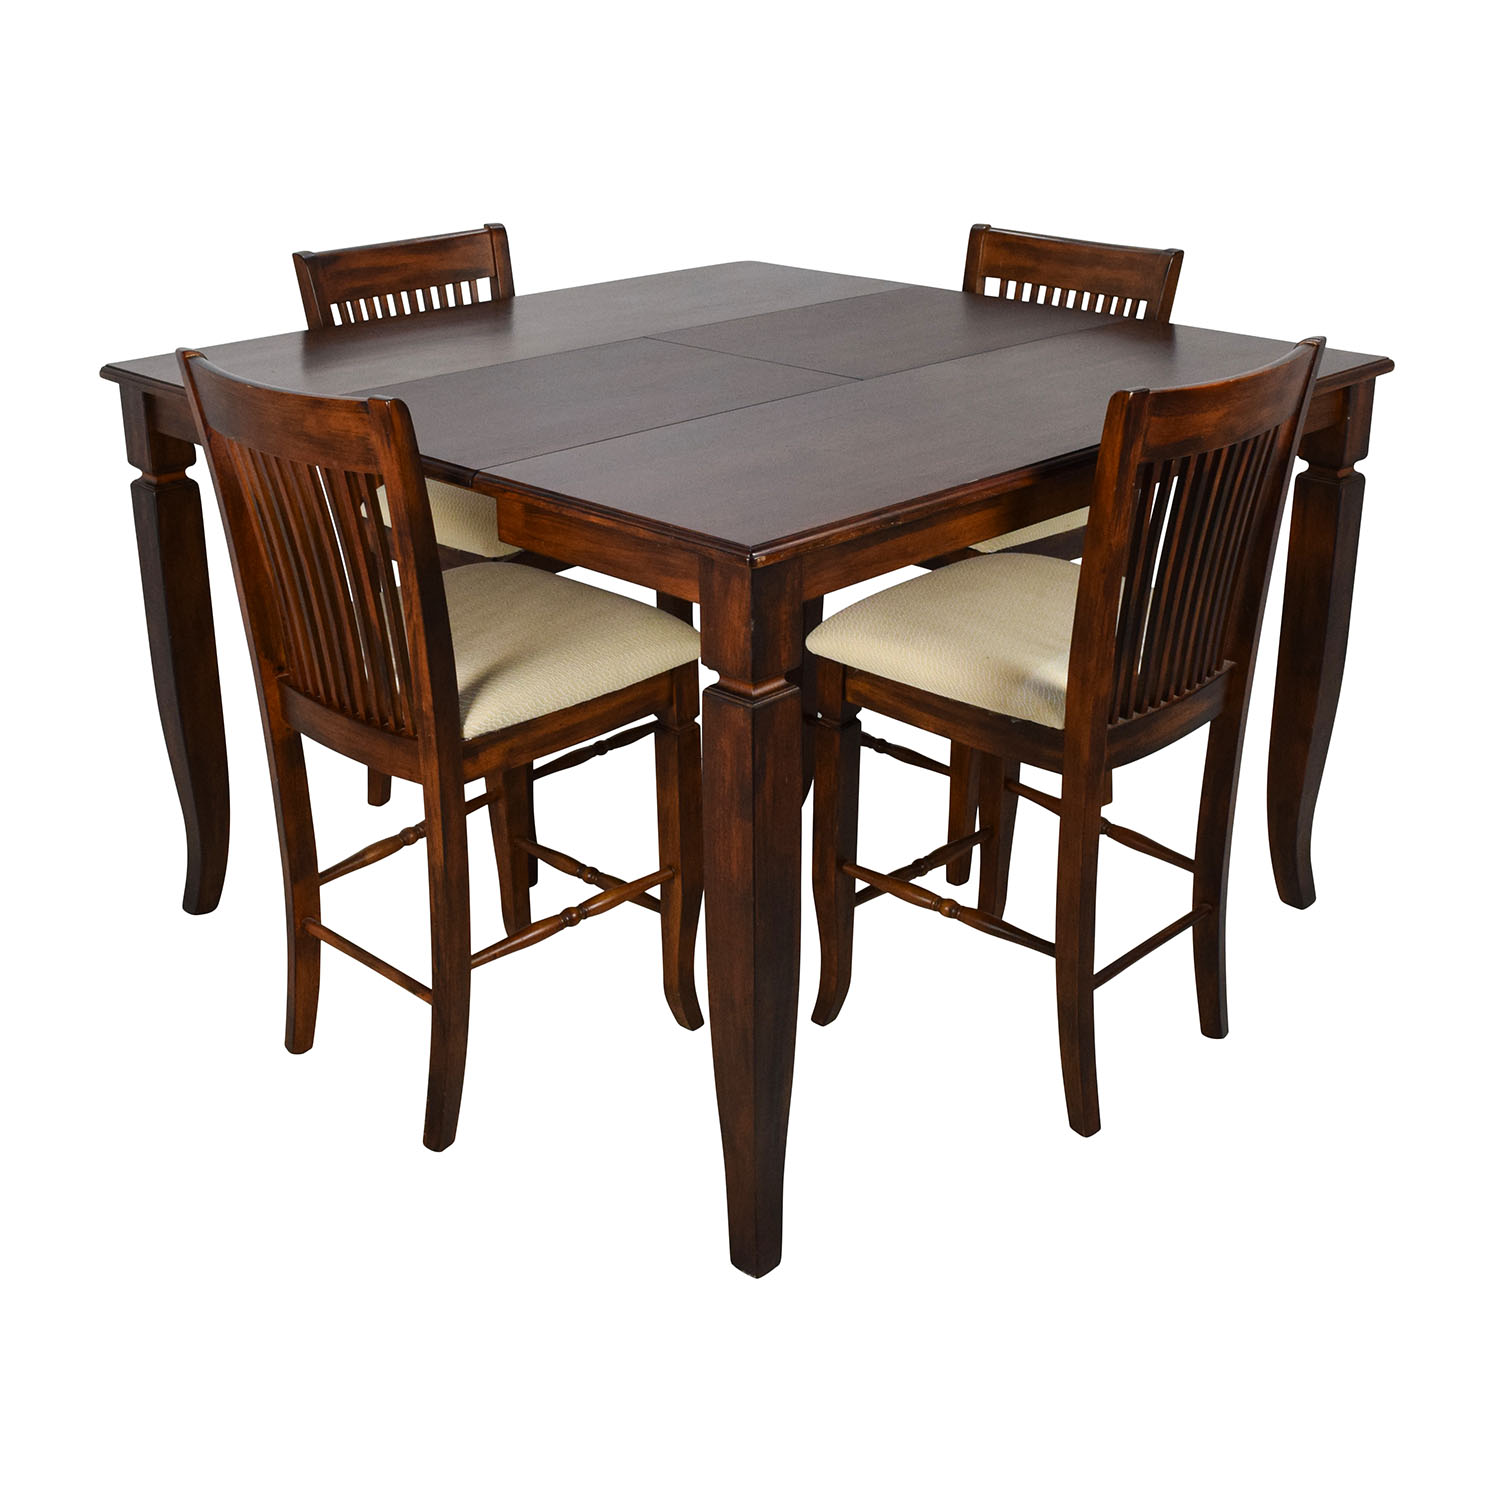 Tall Extendable Dining Room Table Set used